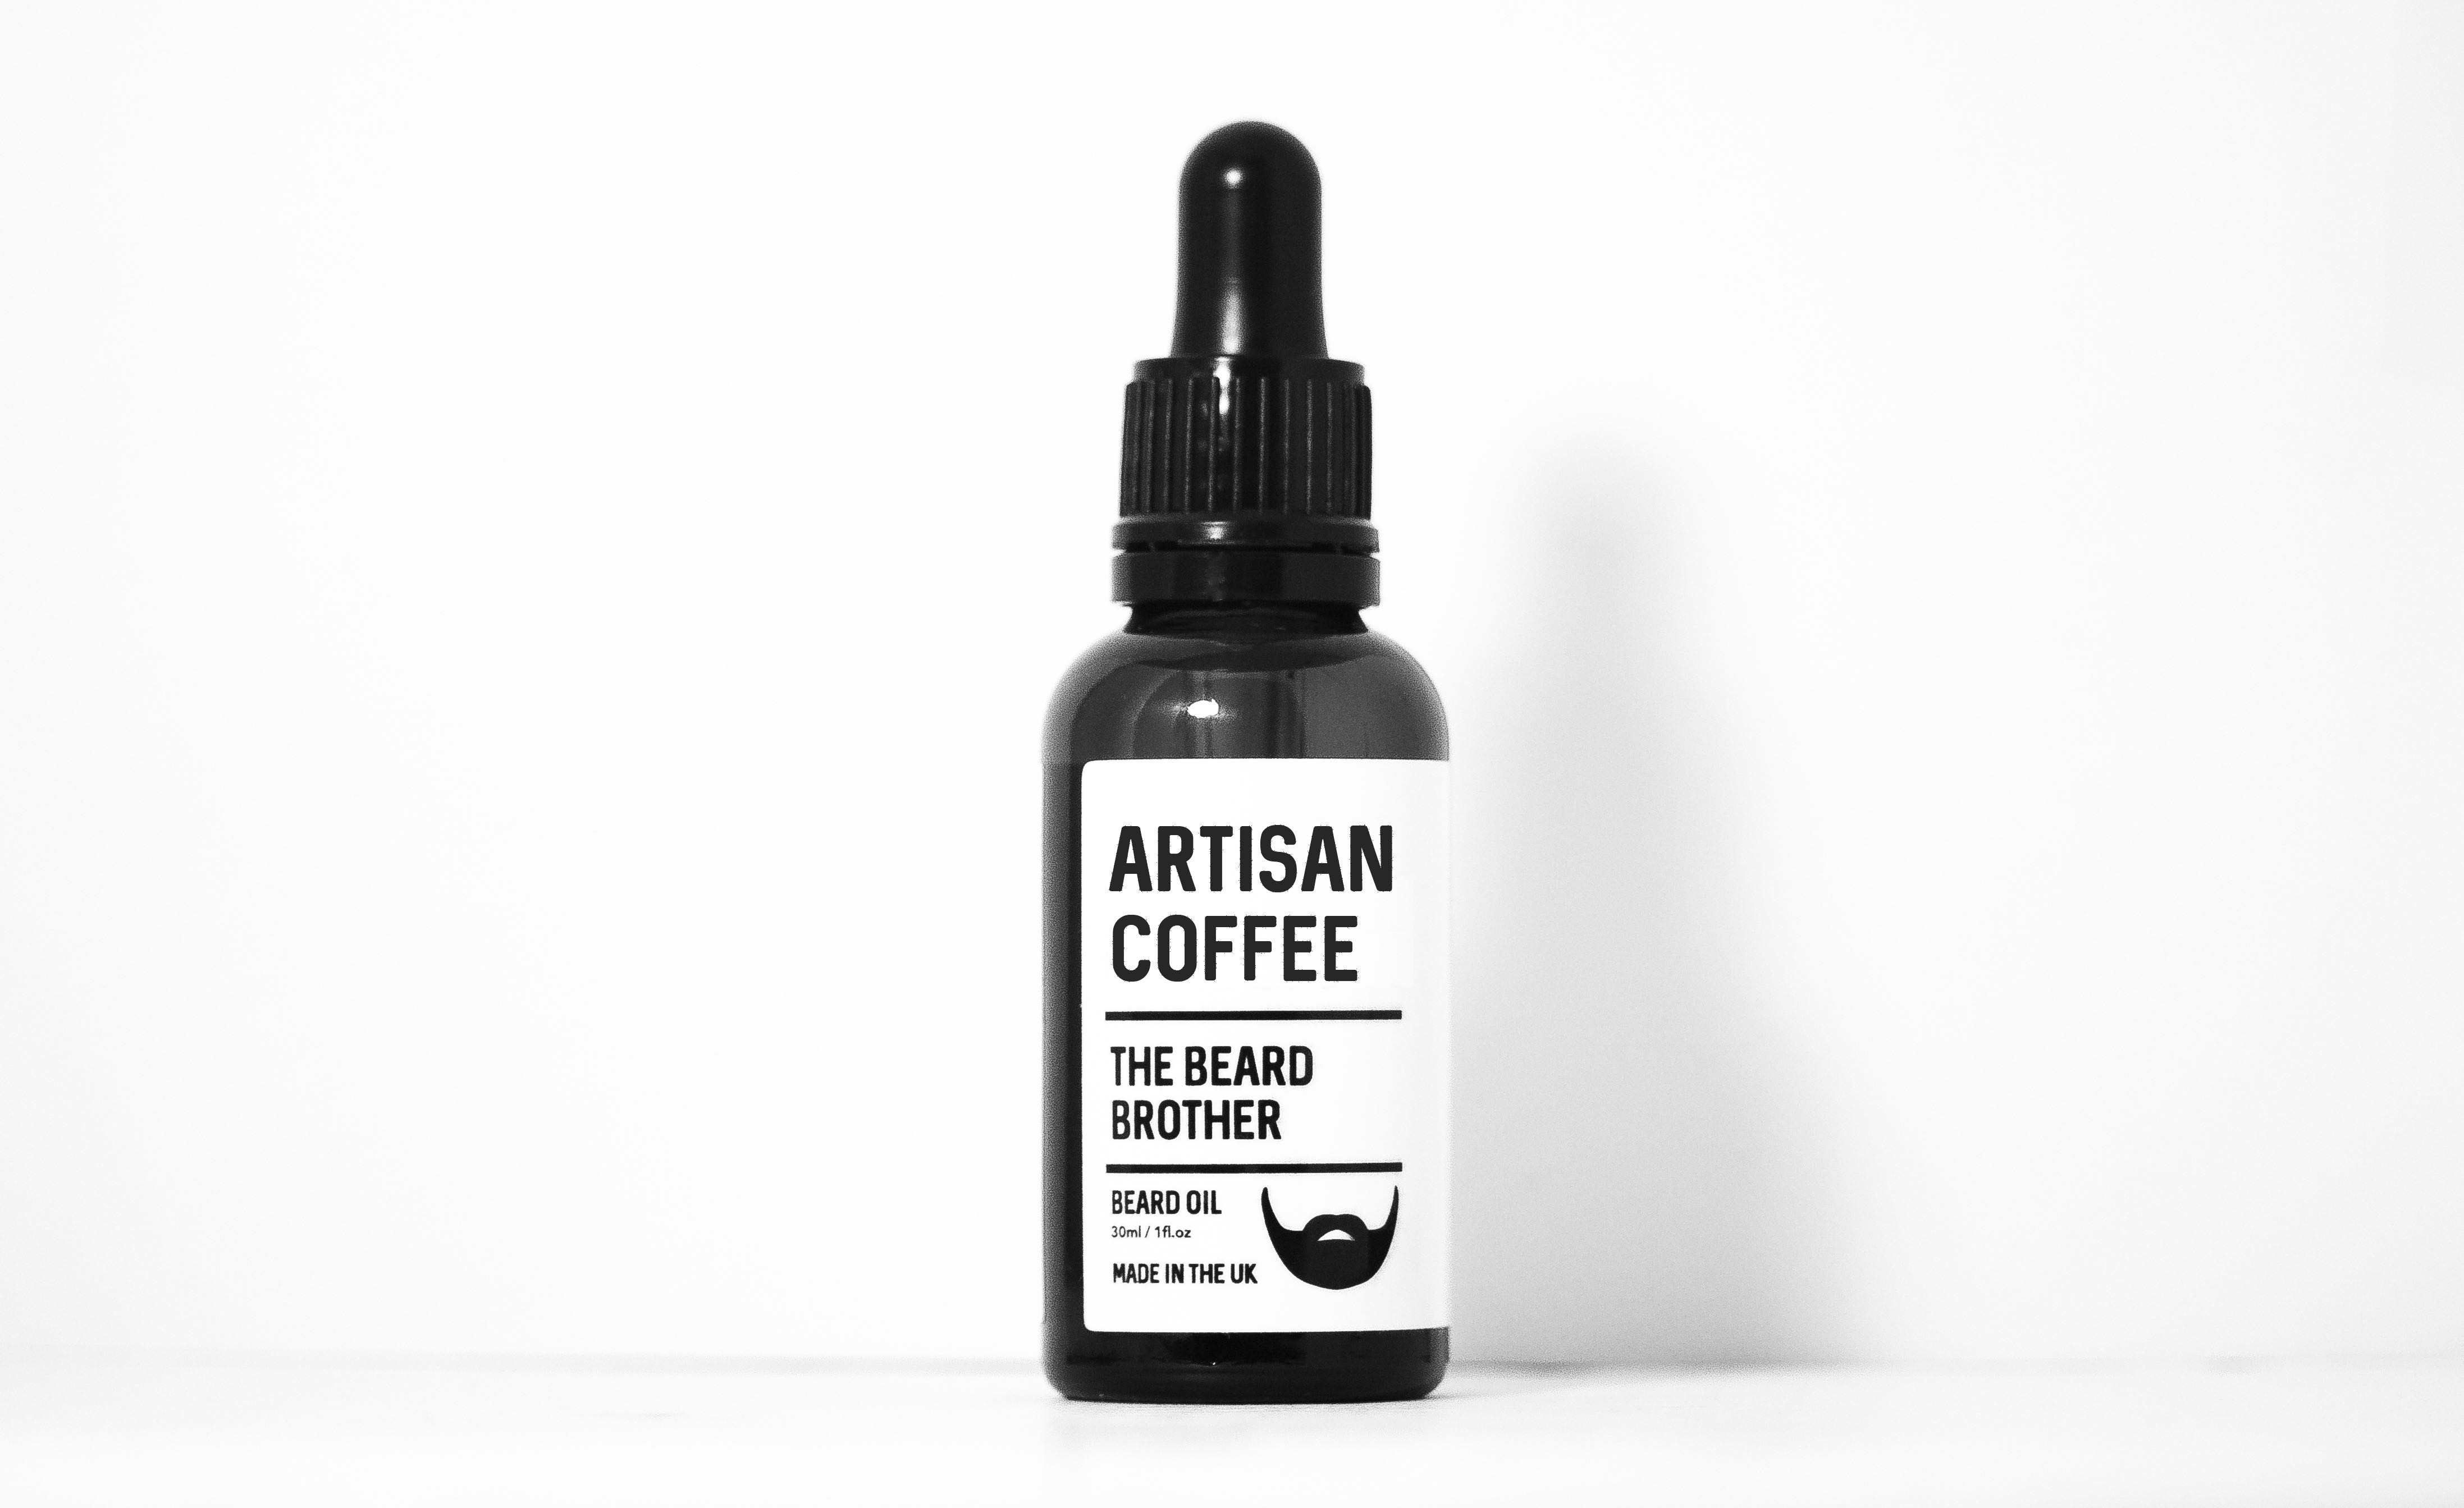 A beard oil product design and branding design pictured on a white background